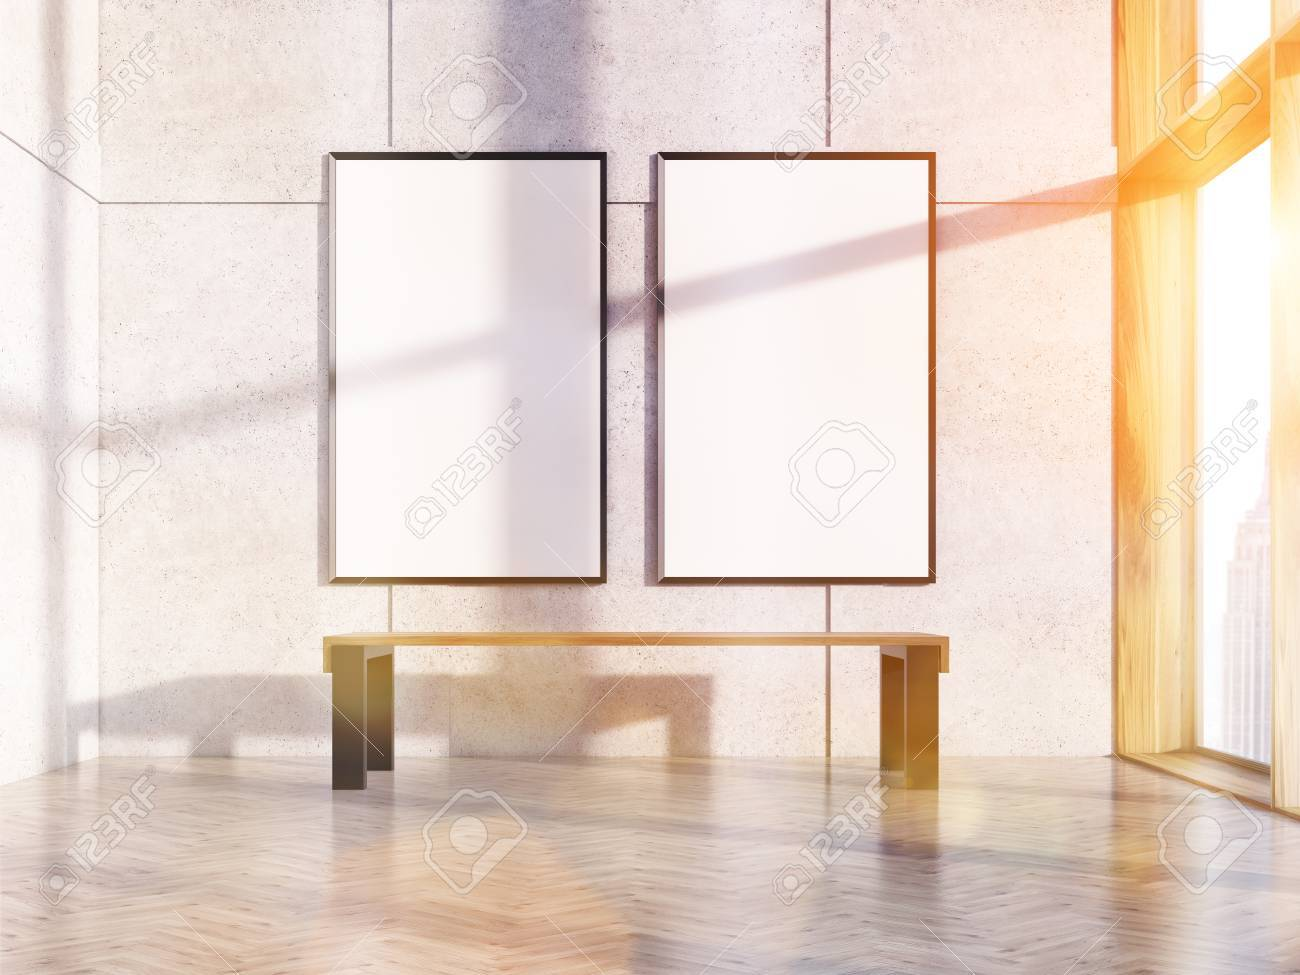 Two Blank Picture Frames In Sunlit Interior With Bench, Concrete ...